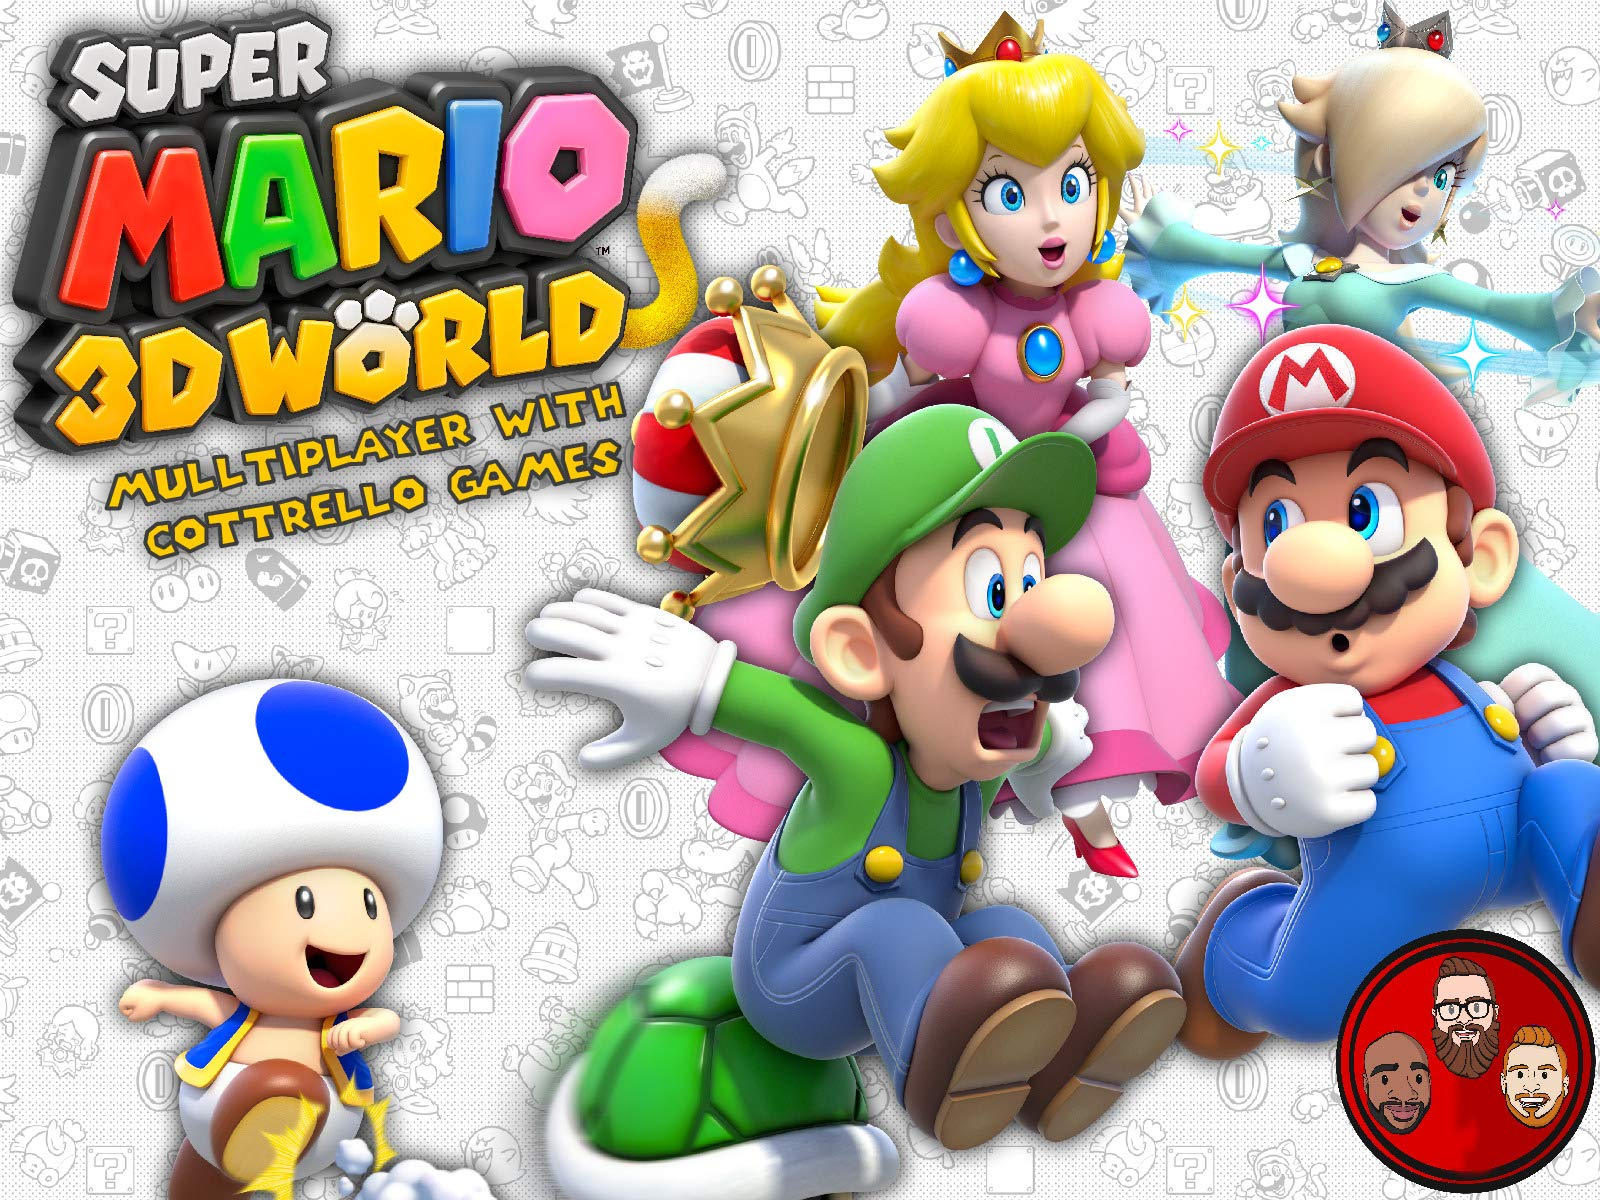 Super Mario 3D World Multiplayer with Cottrello Games